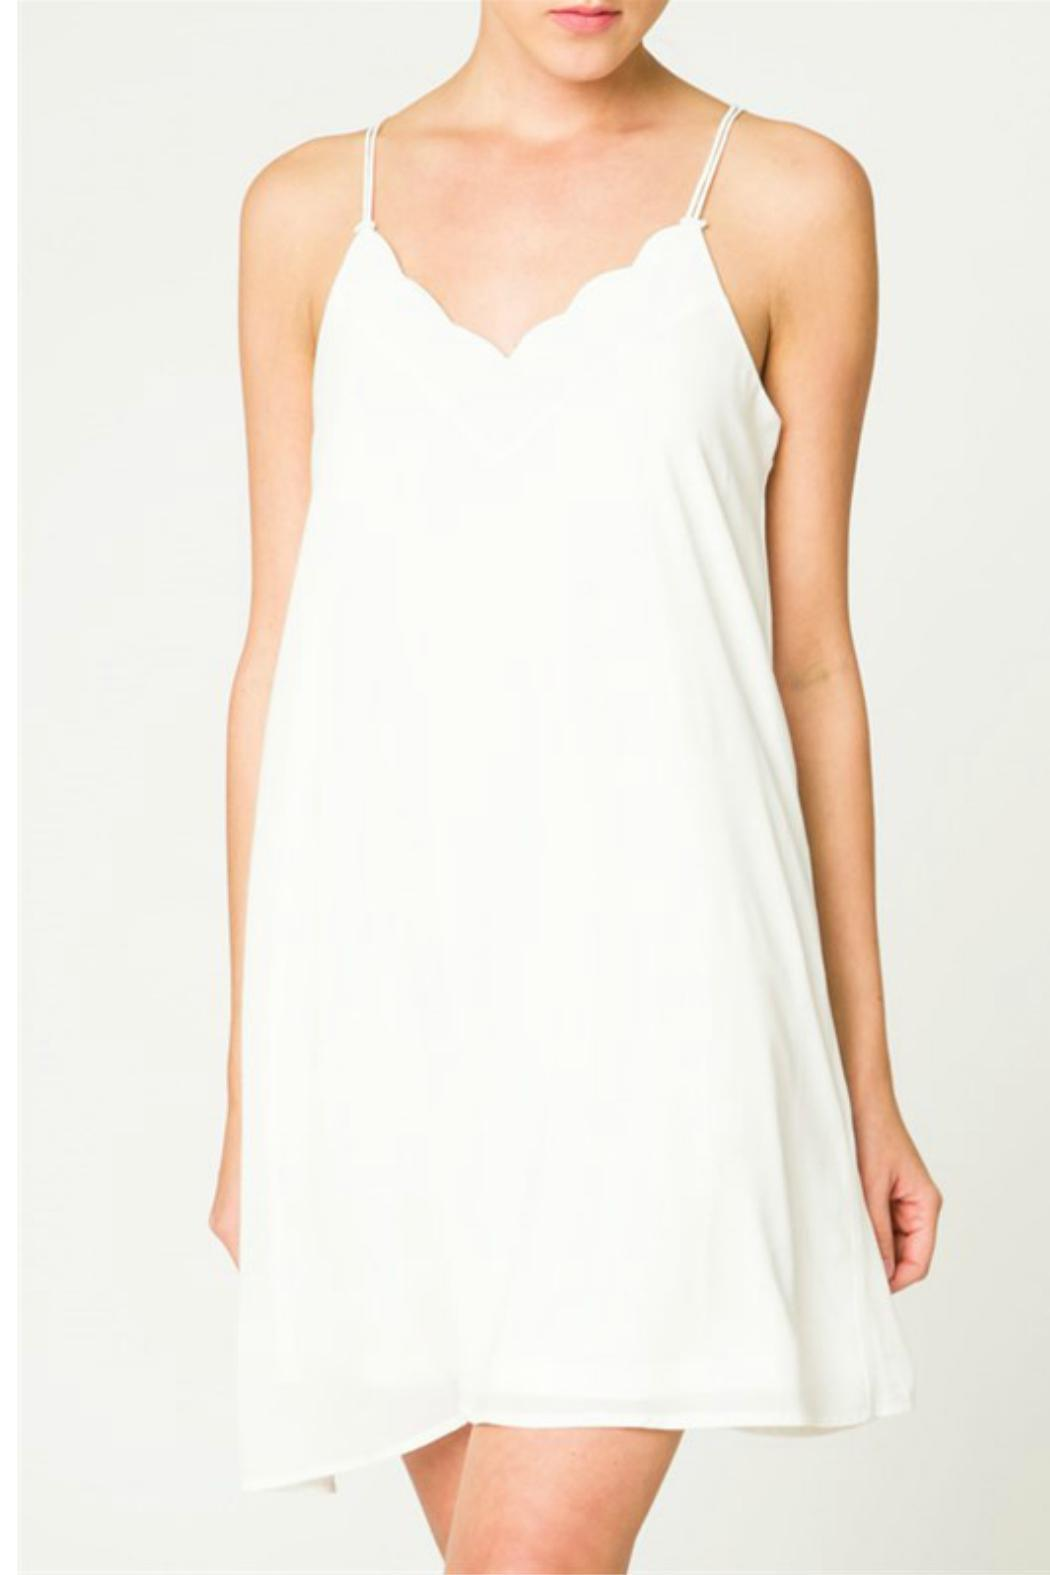 LoveRiche Scallop Slip Dress - Main Image